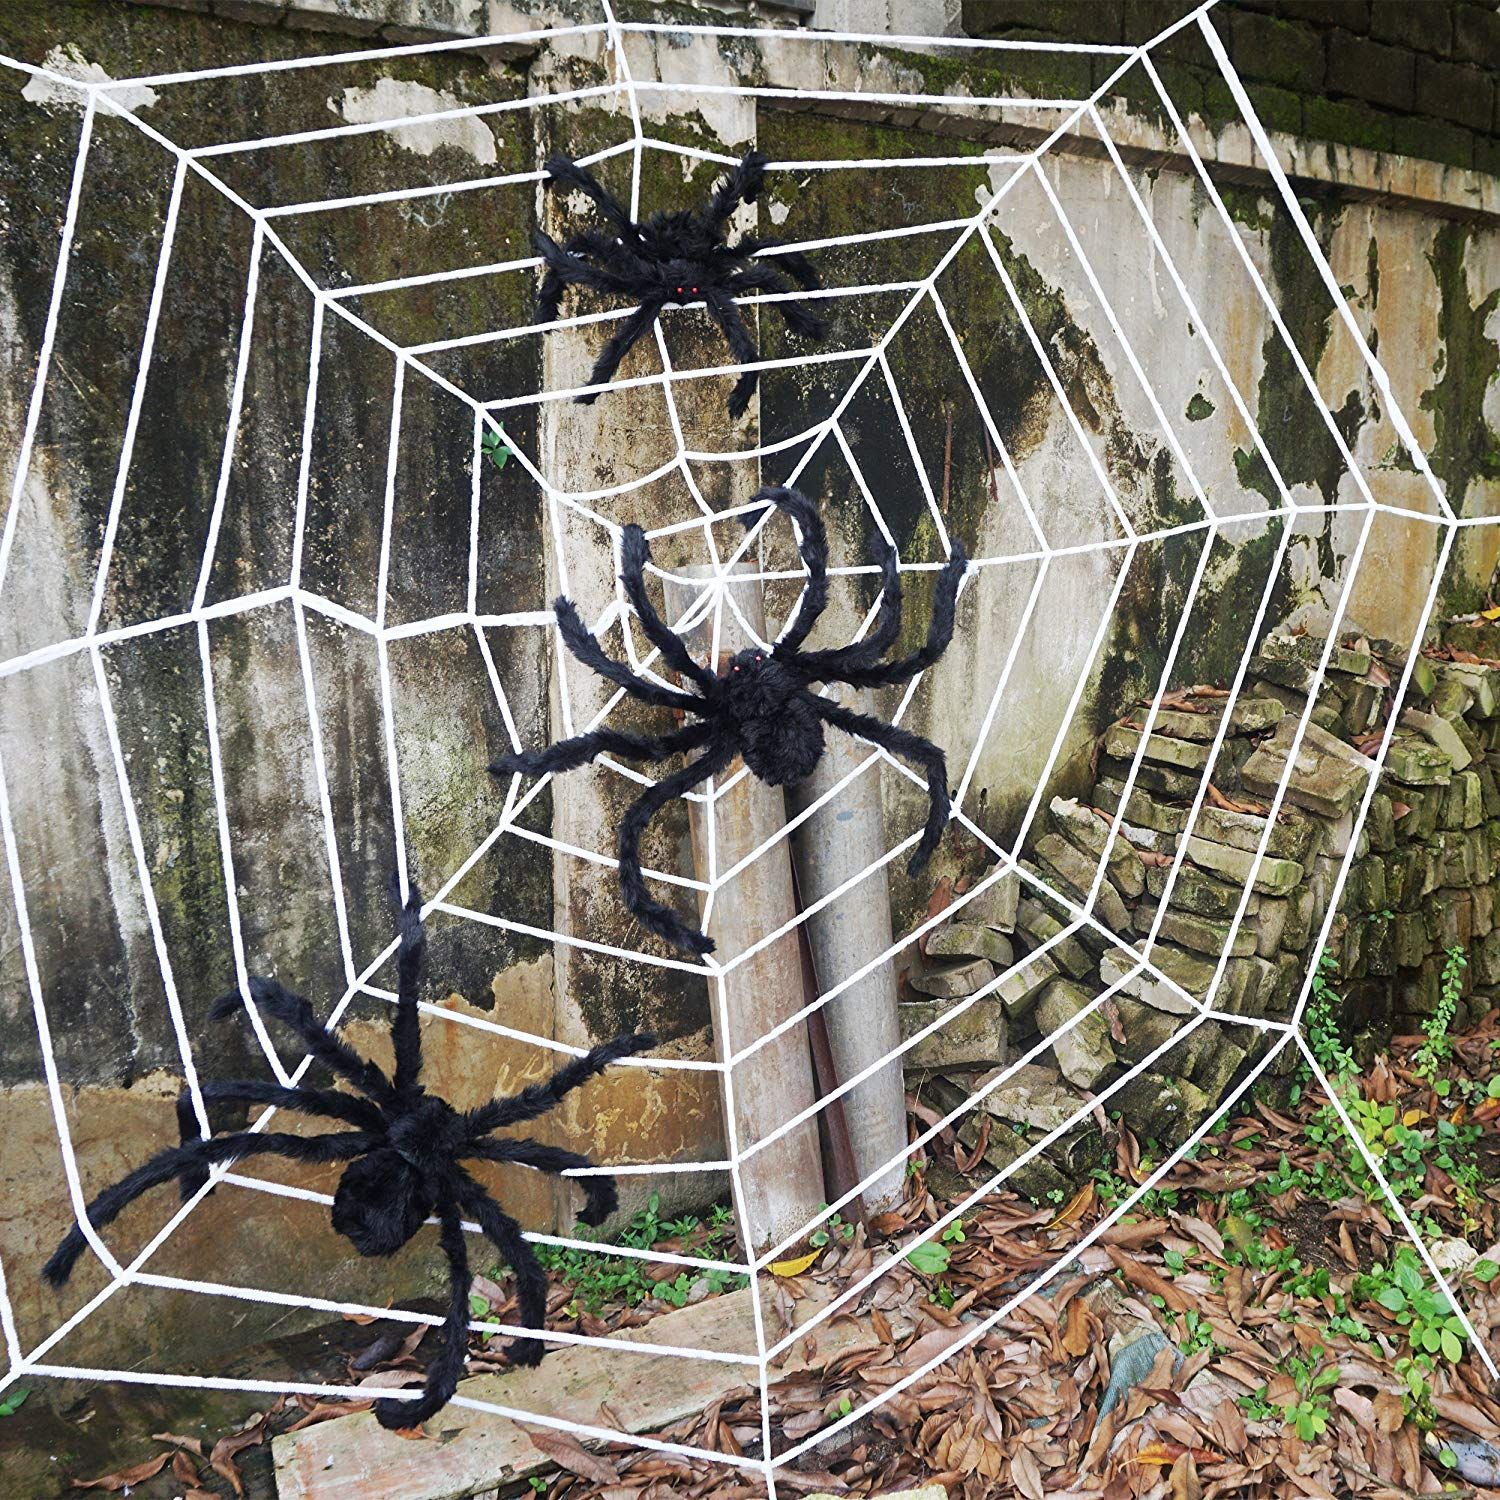 Giant Spiders And Web Fun Halloween Decor Halloween Spider Halloween Spider Decorations